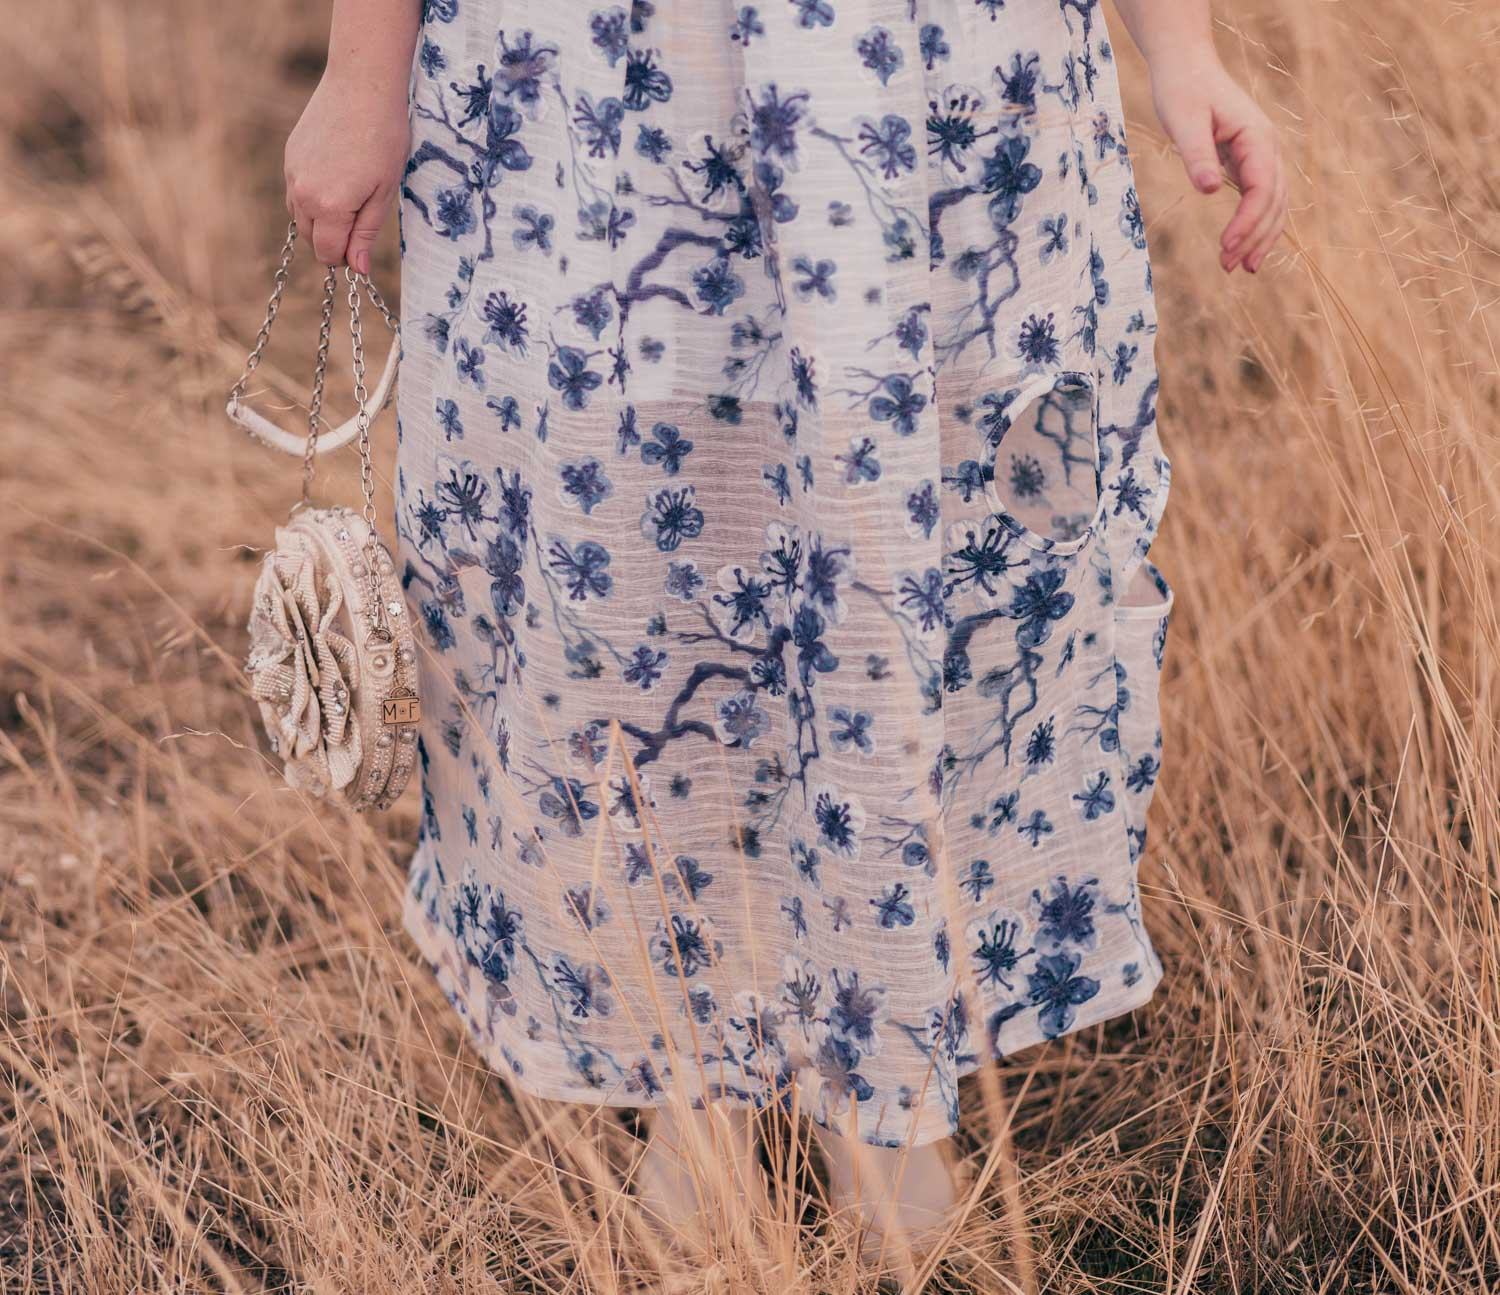 Feminine fashion blogger Elizabeth Hugen of Lizzie in Lace wears a beautiful white and blue floral dress with white boots for spring and shares an interview with Syra J.